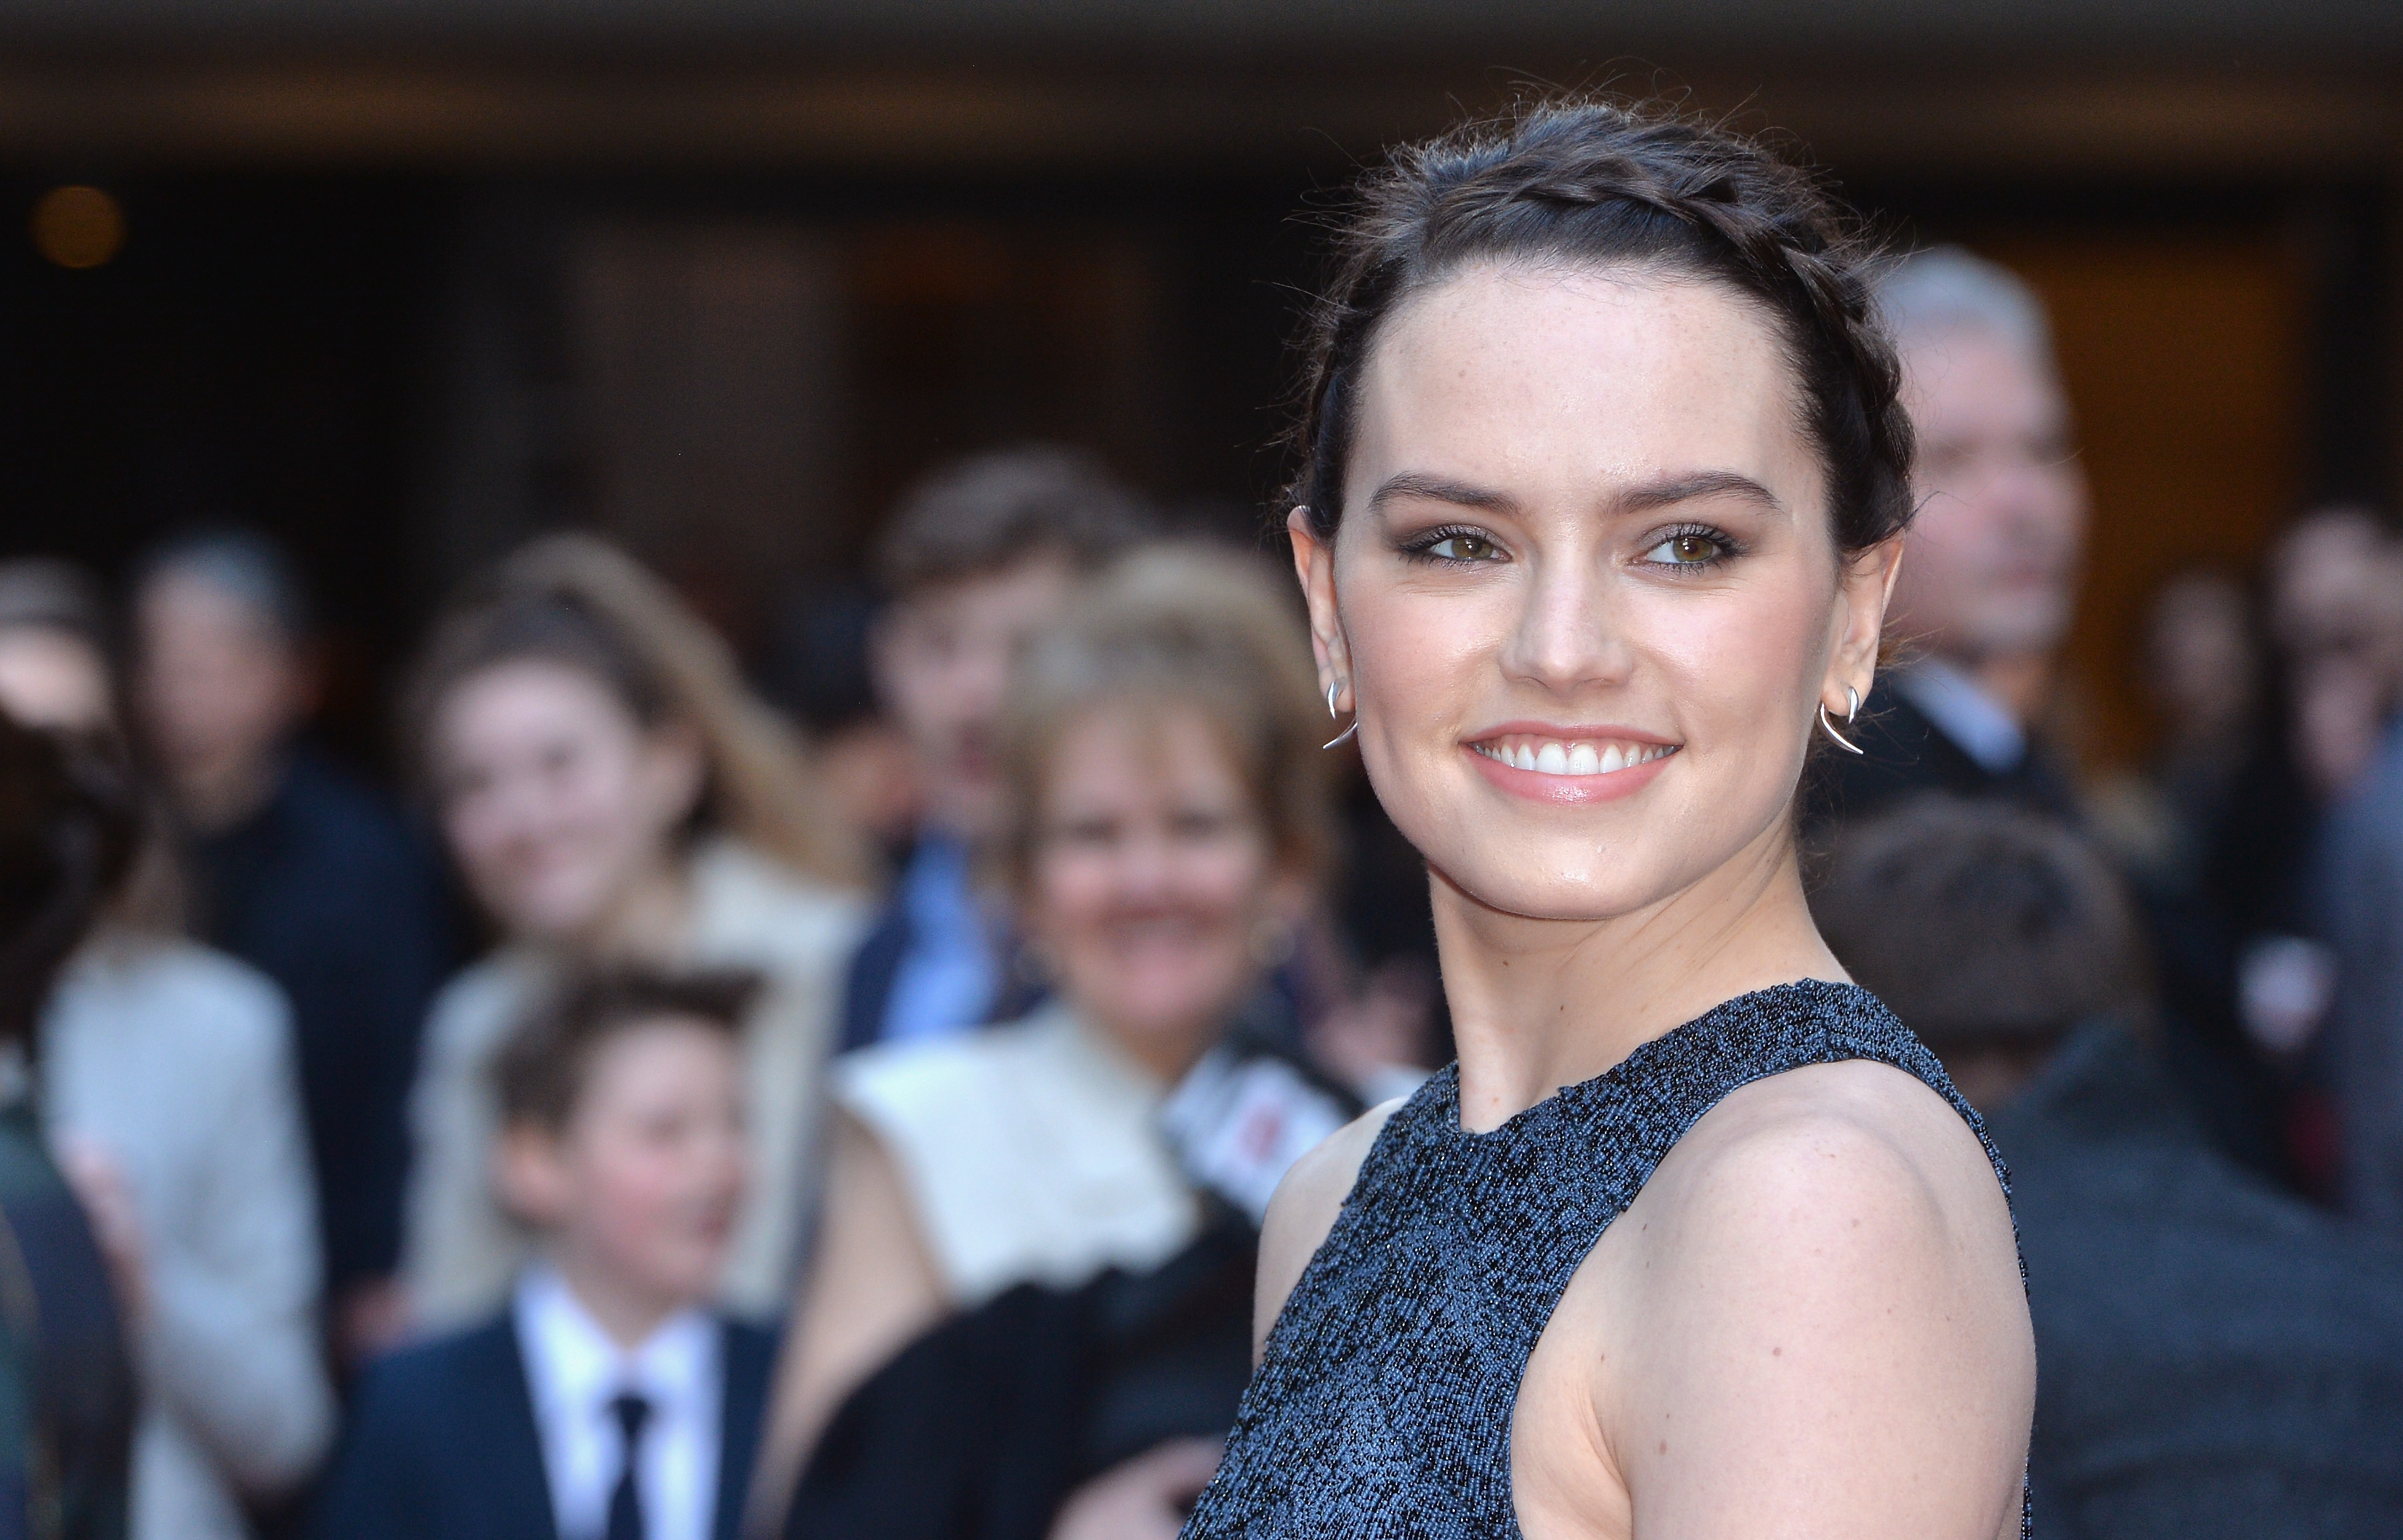 Daisy Ridley attends the Jameson Empire Awards in London, on March 20, 2016.